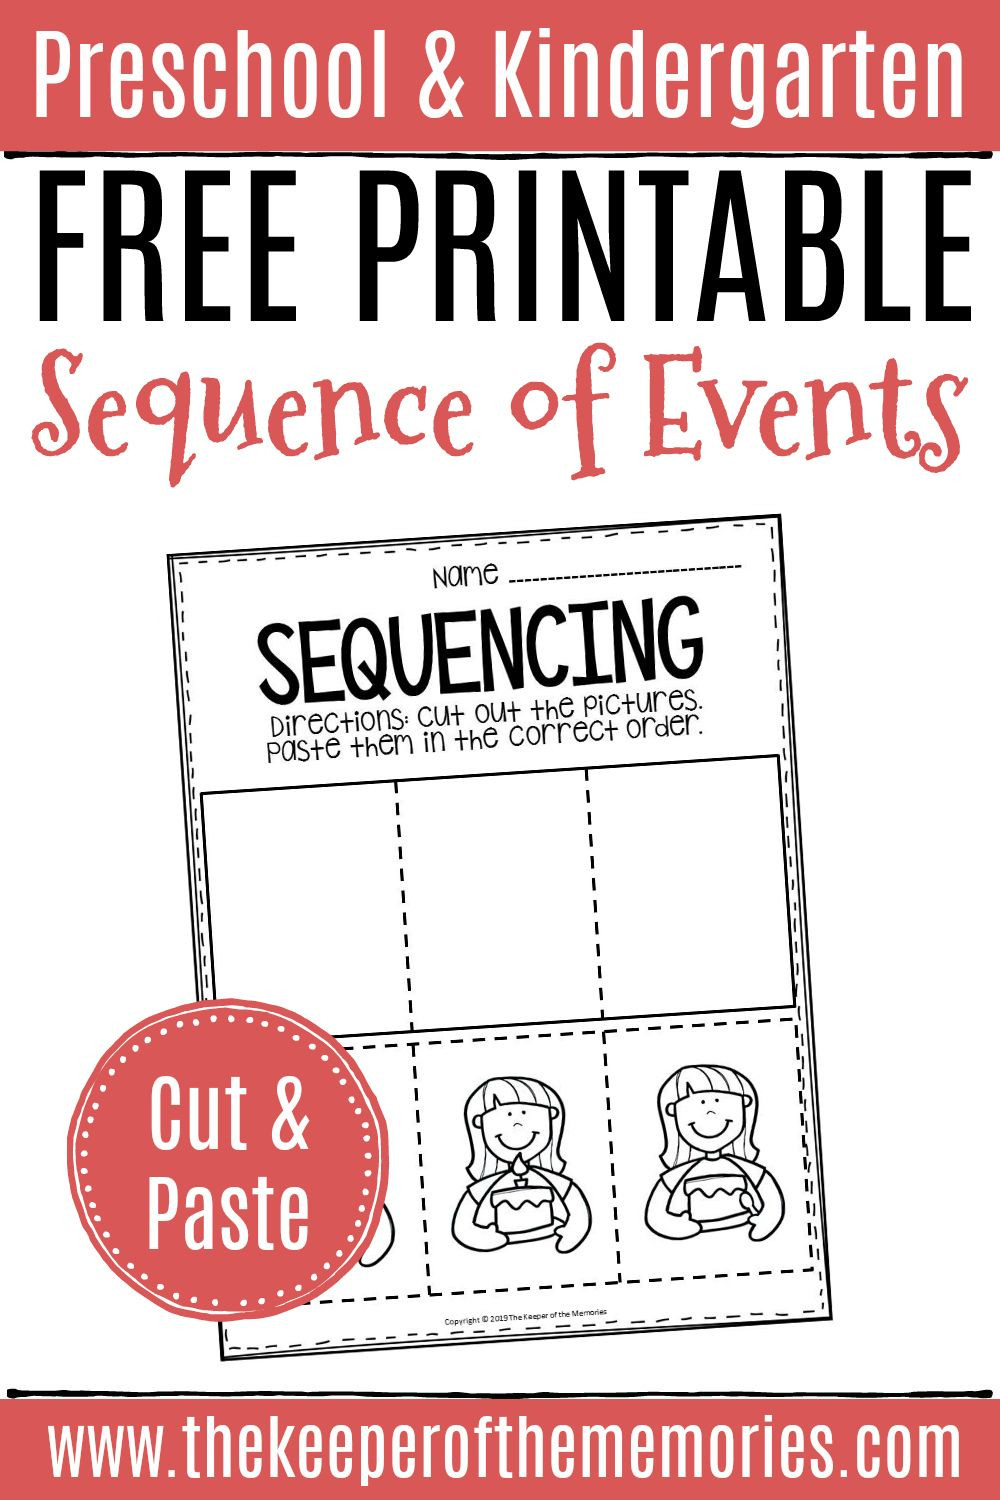 Free Printable Sequencing Worksheets Free Printable Sequence Of events Worksheets